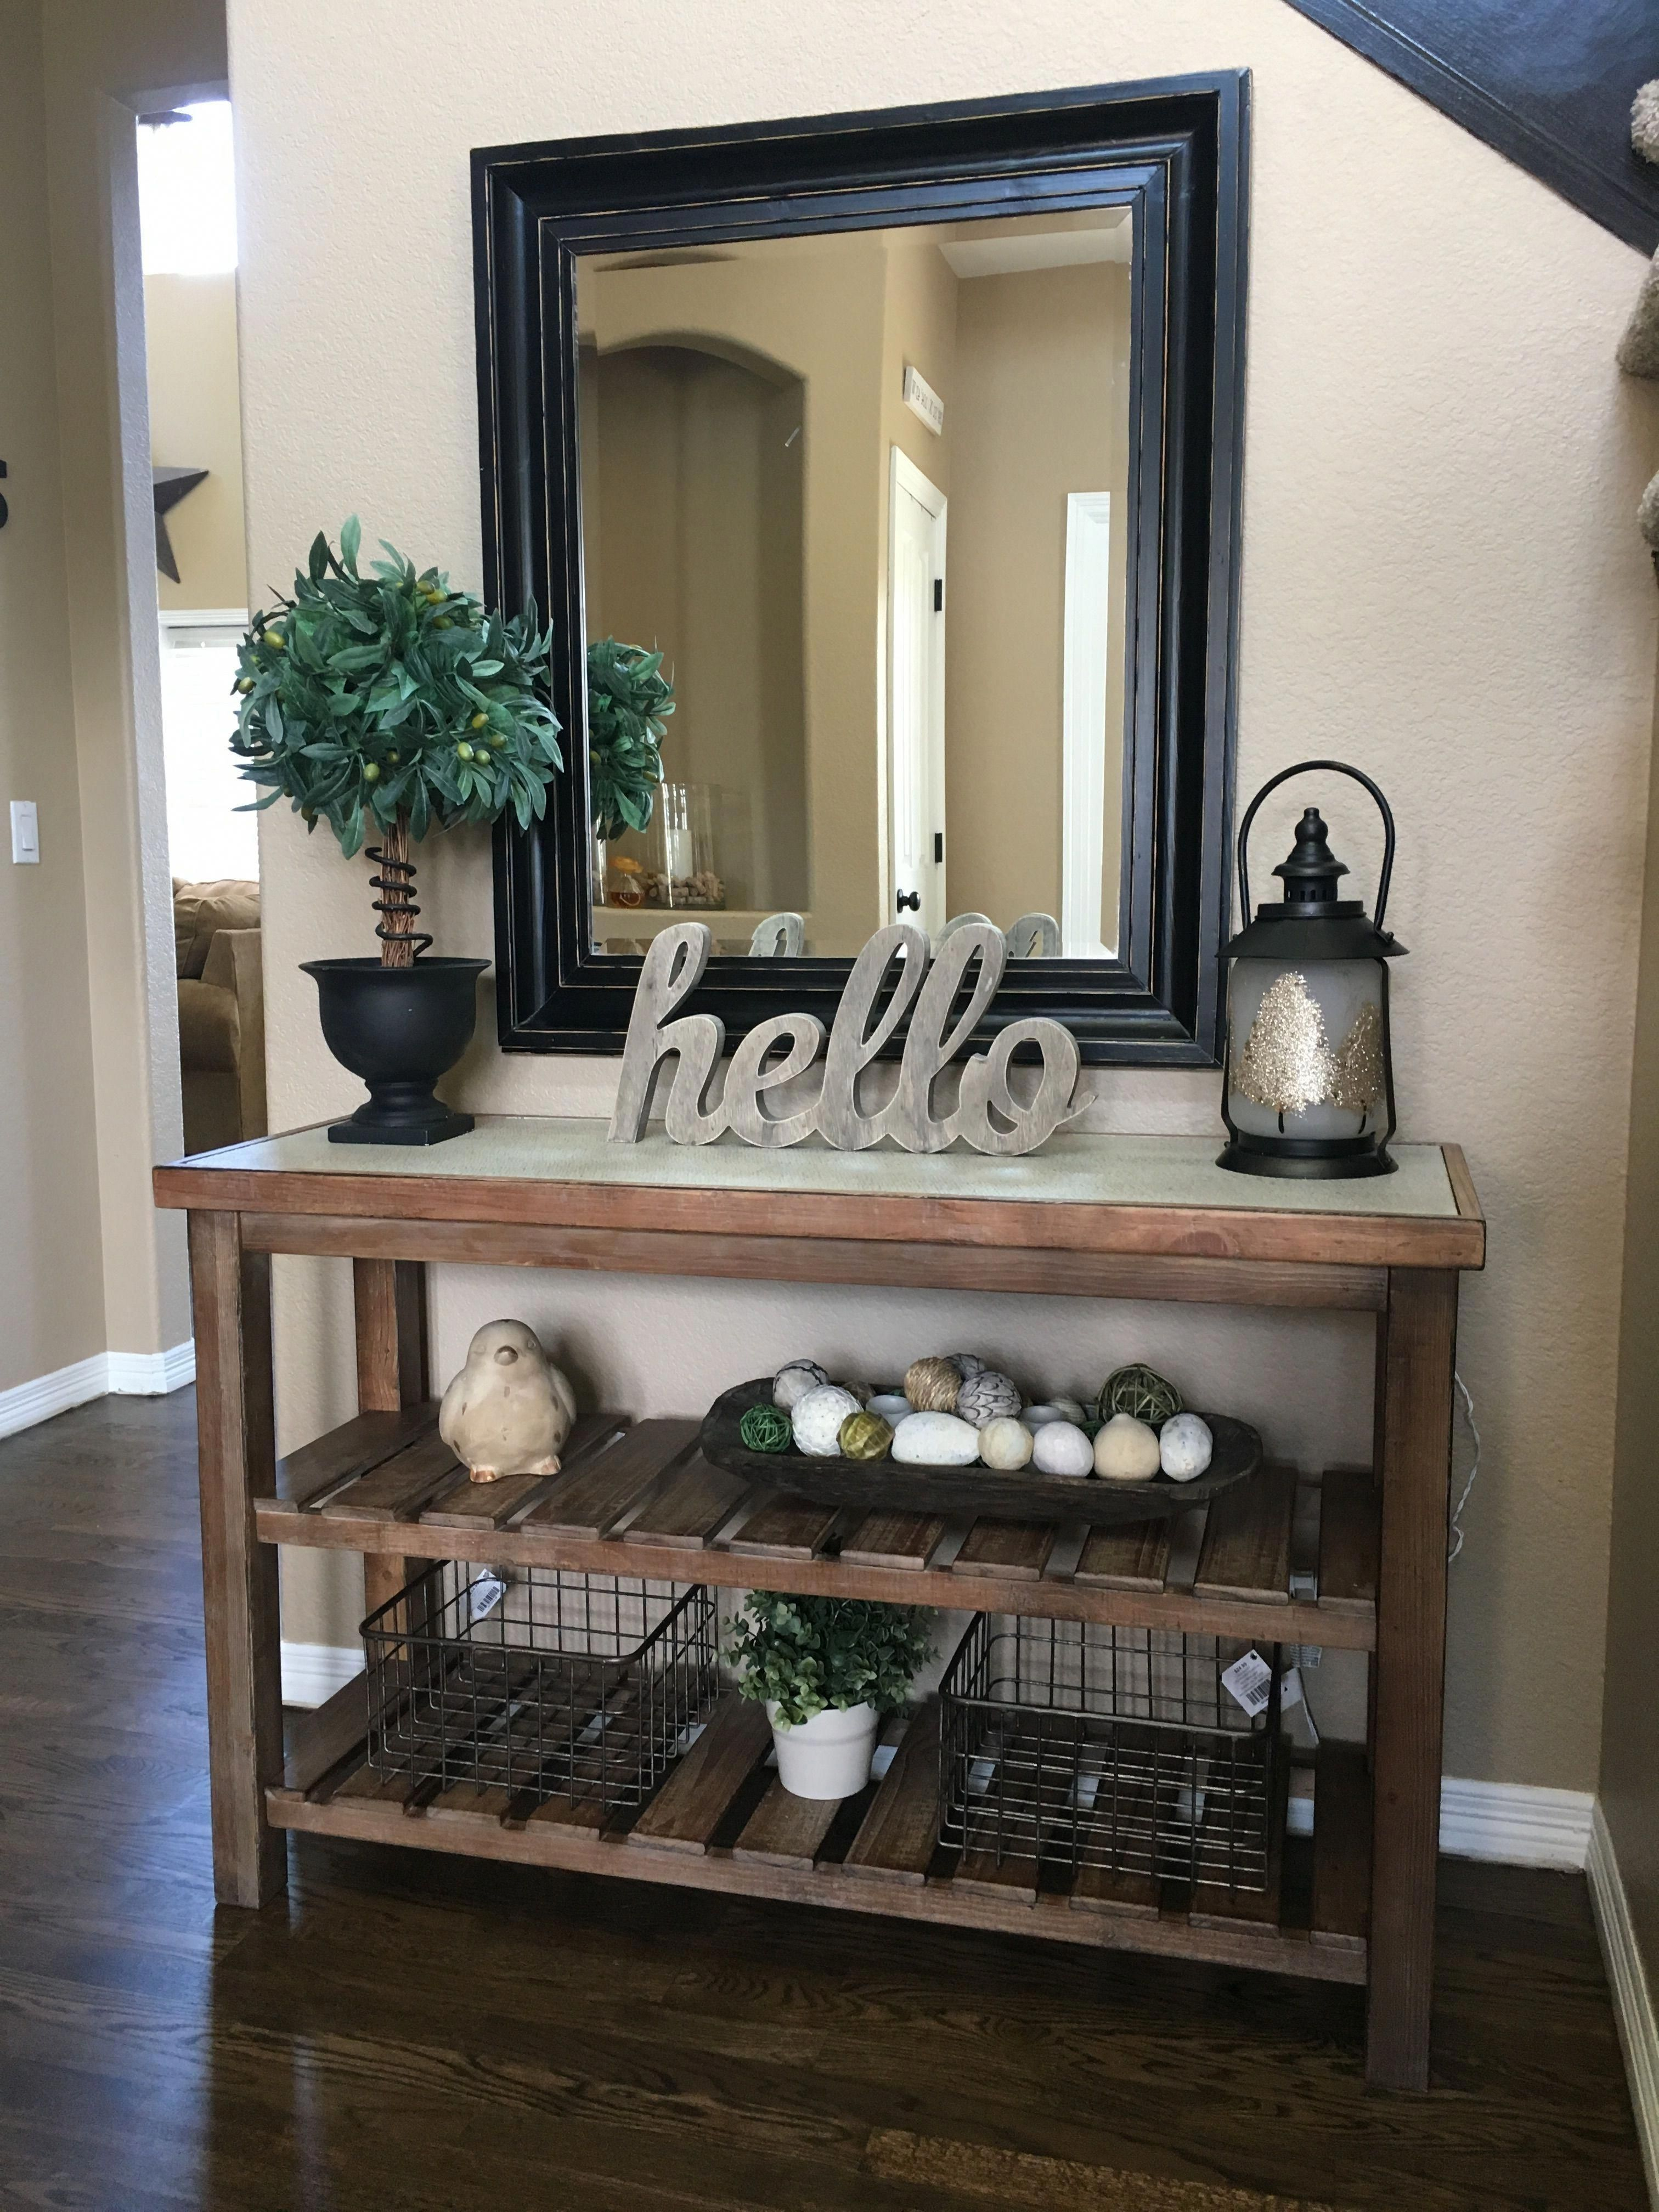 35 awesome entry table ideas to give some inspiration on